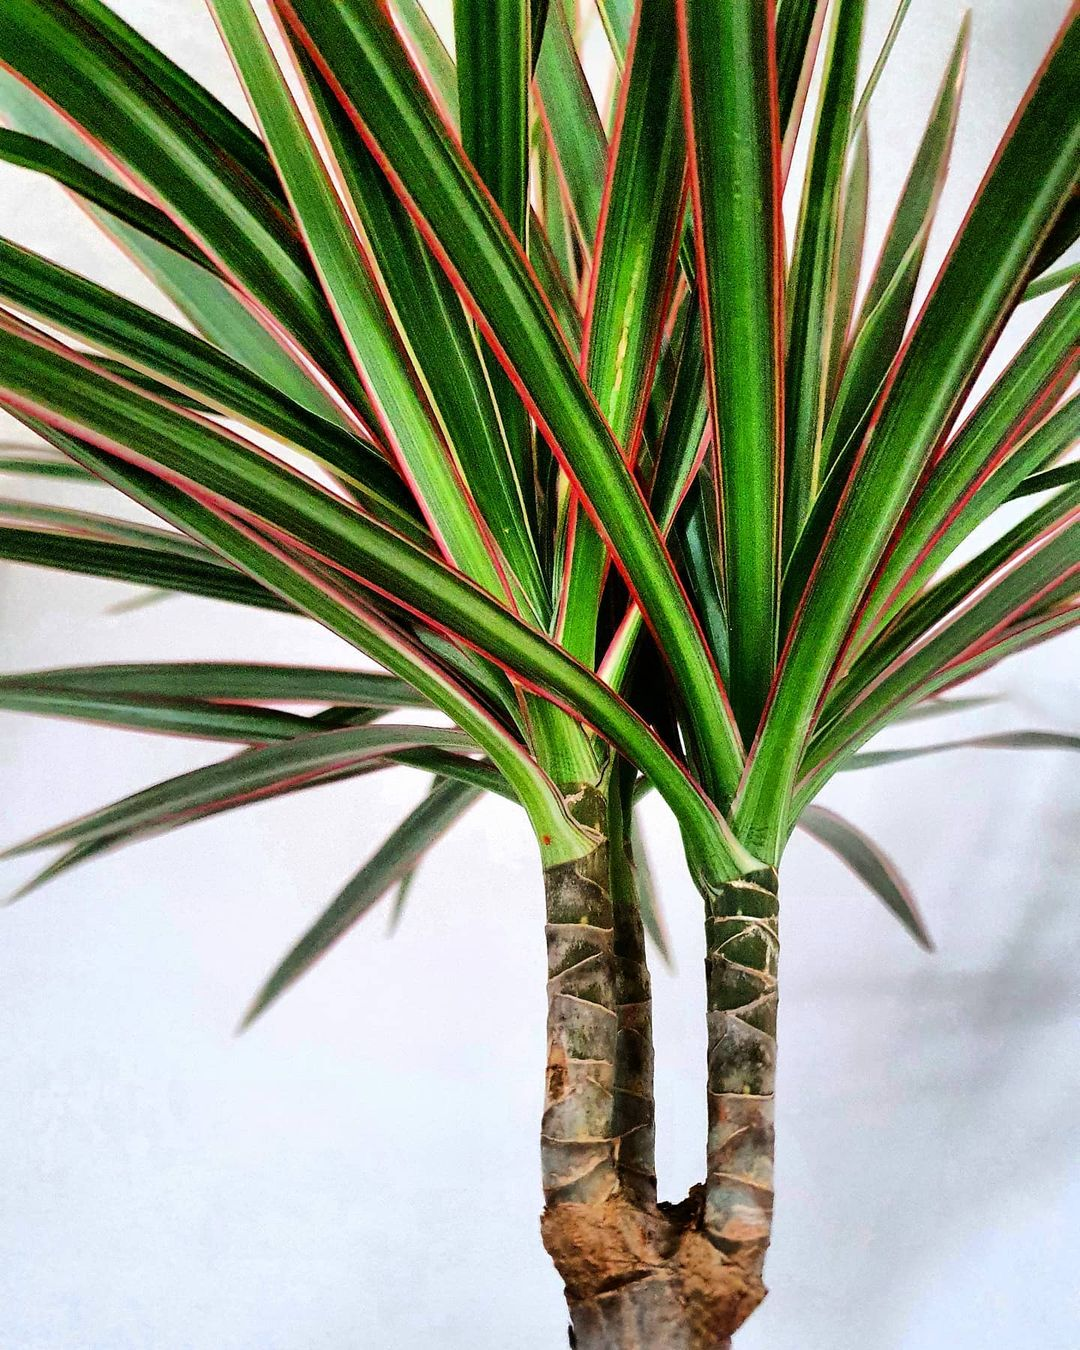 Dragon Tree is a low-maintenance plant for your home office